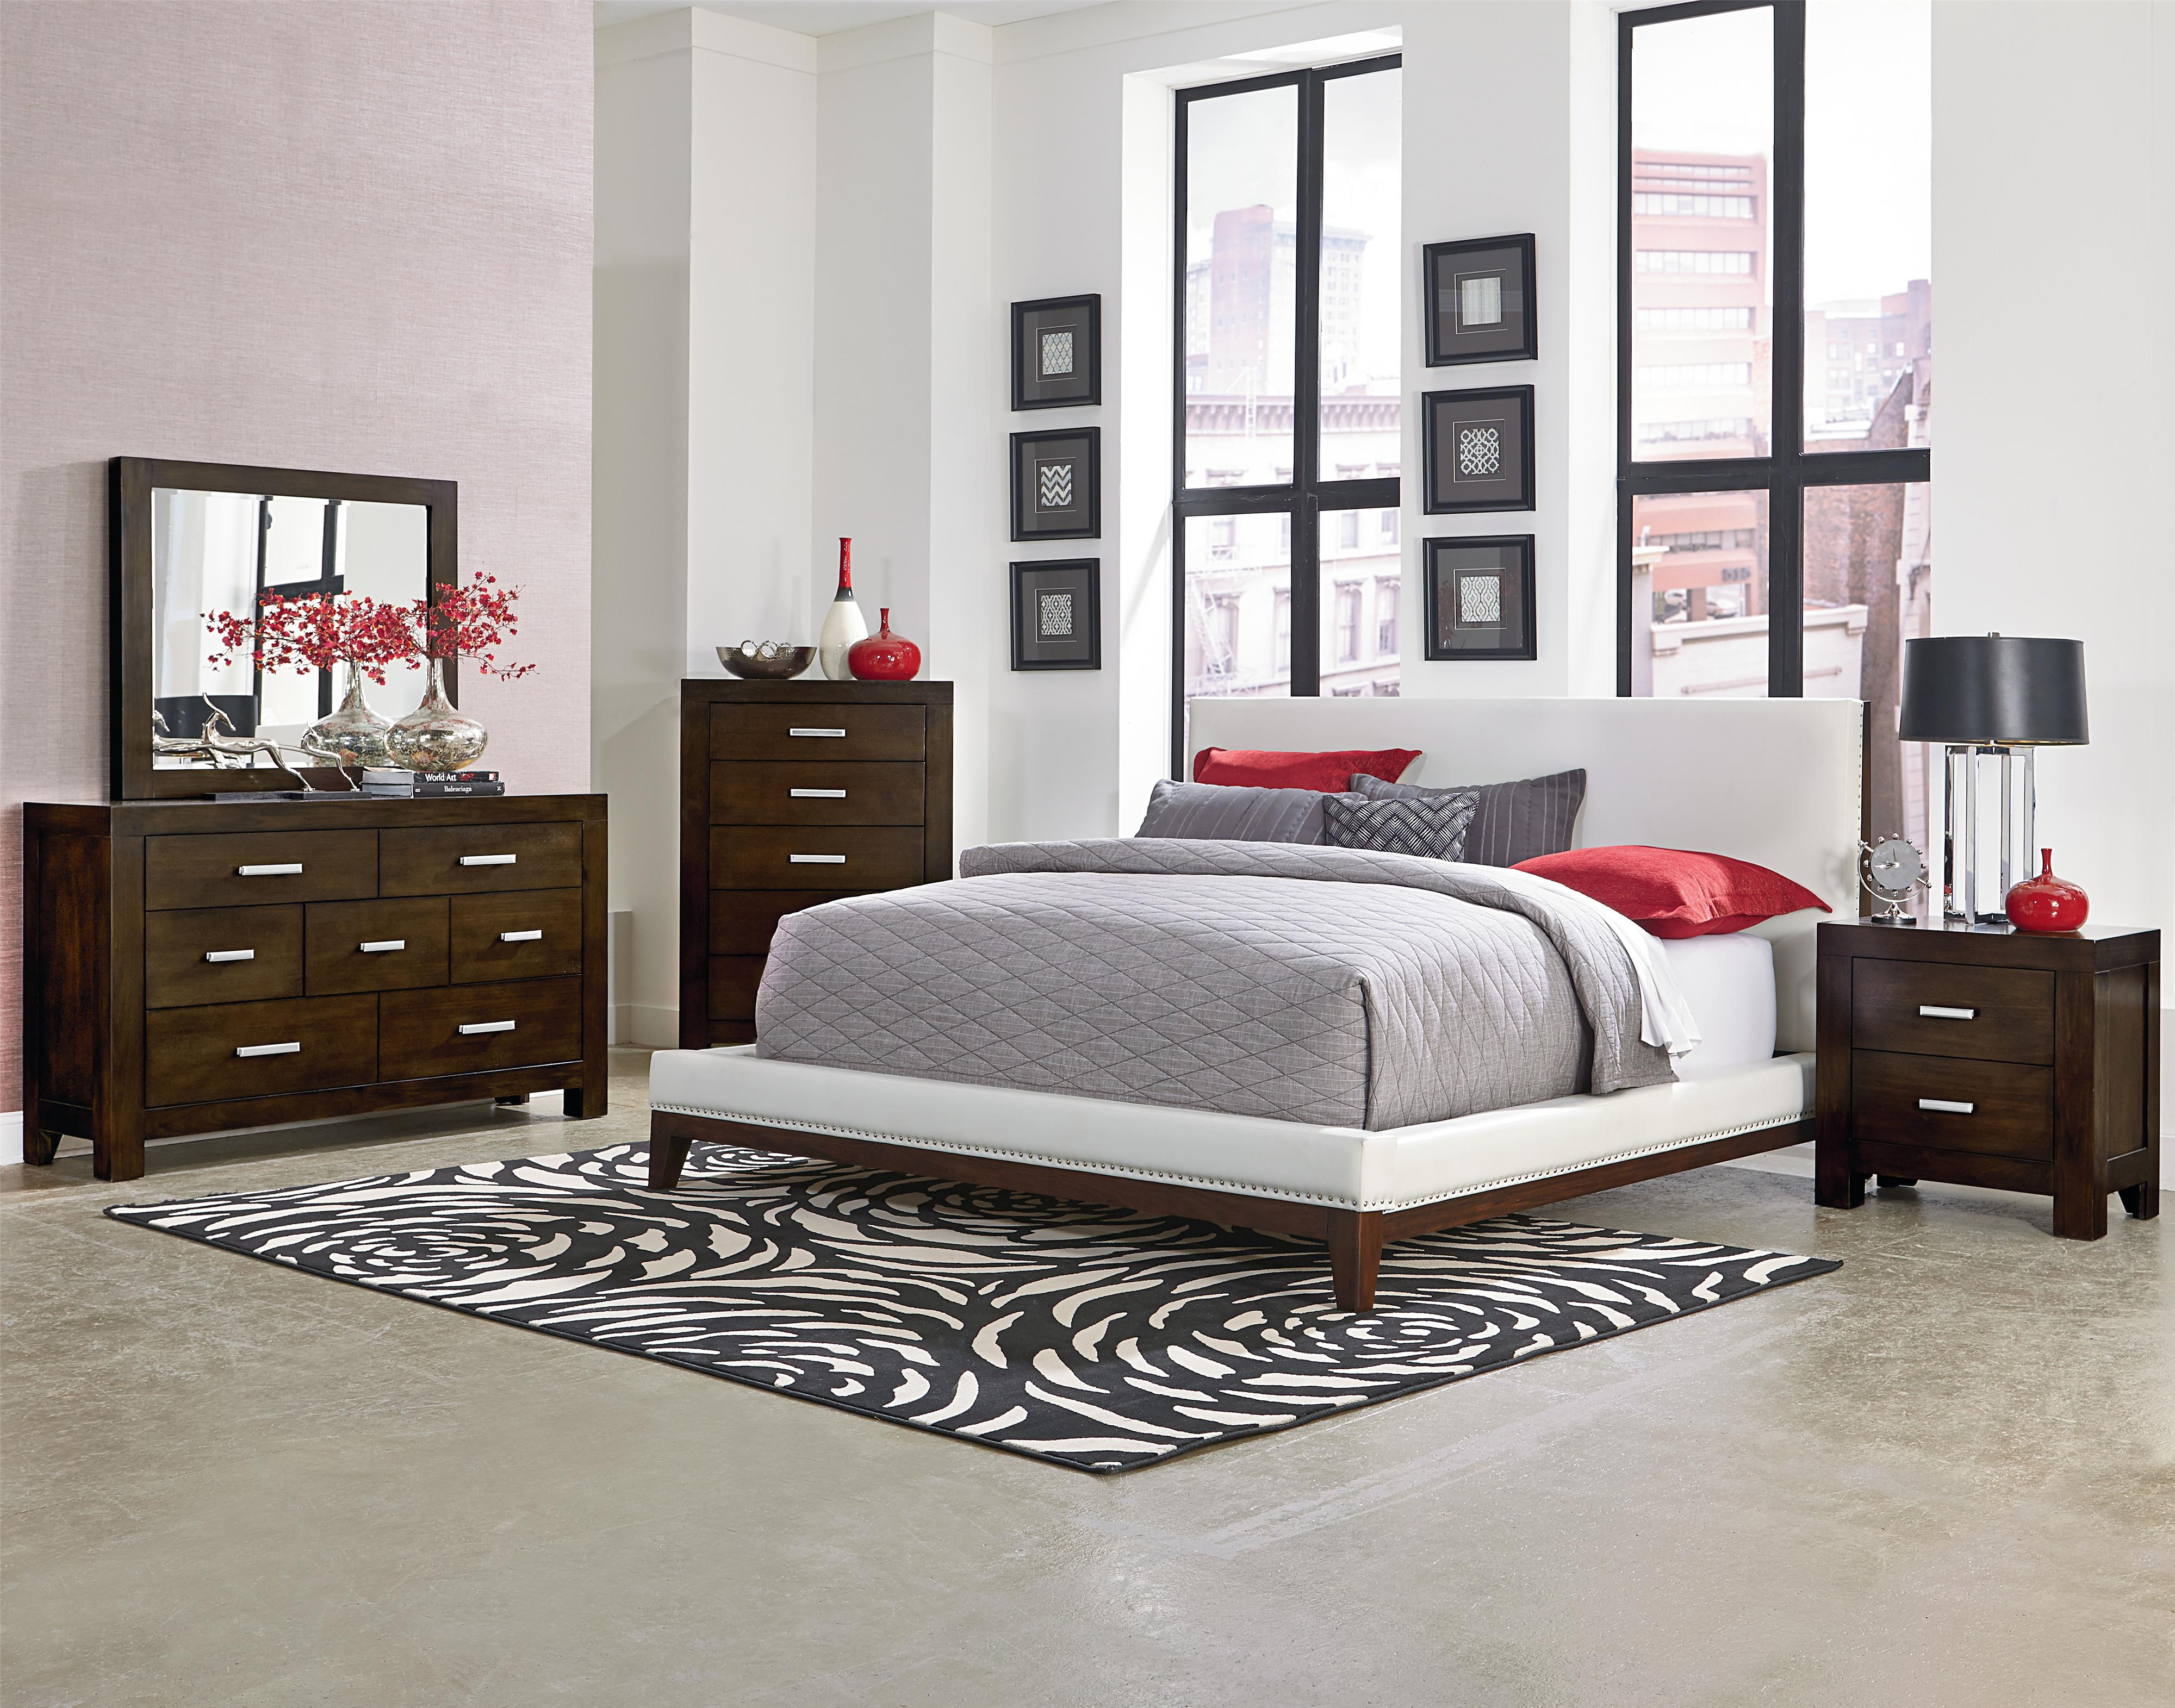 Standard Furniture Couture Queen Bedroom Group - Item Number: 81550 Q Bedroom Group 1